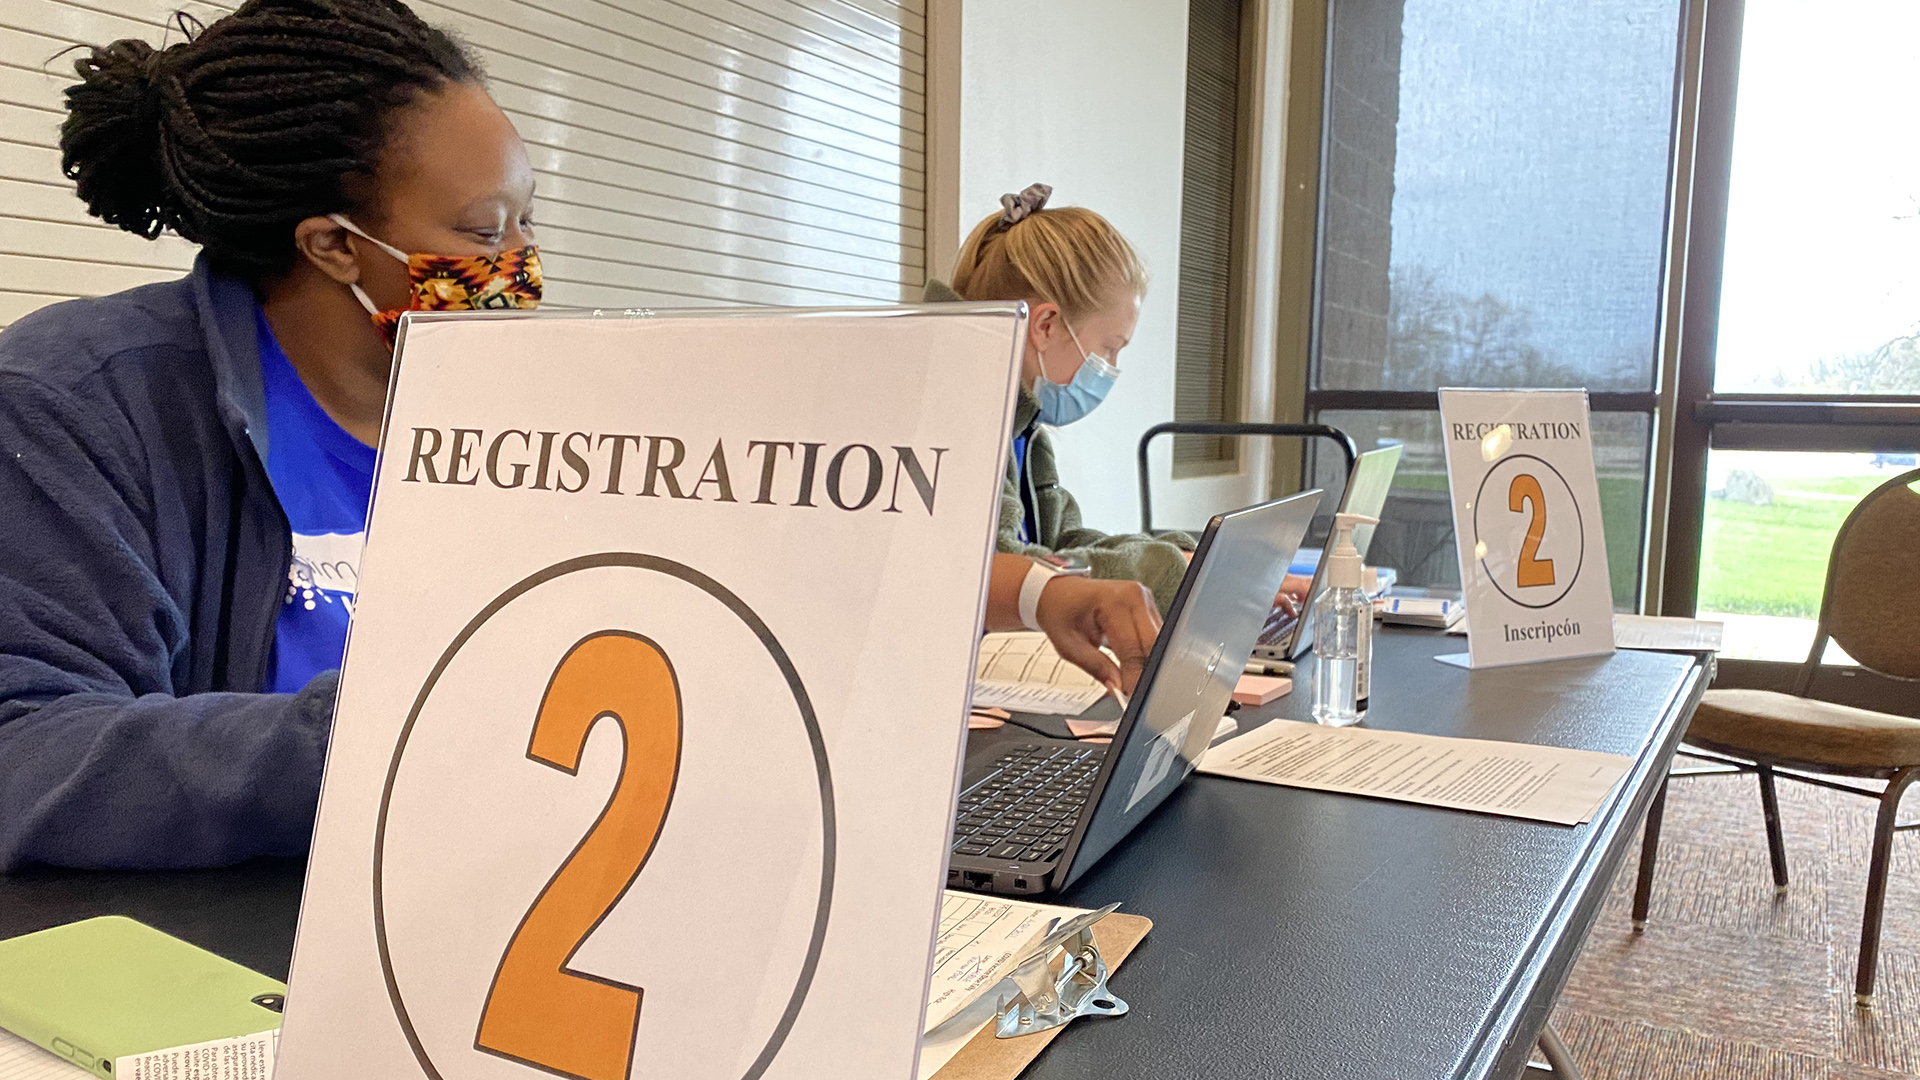 Public Health Madison & Dane County staff work at a vaccination clinic registration table .